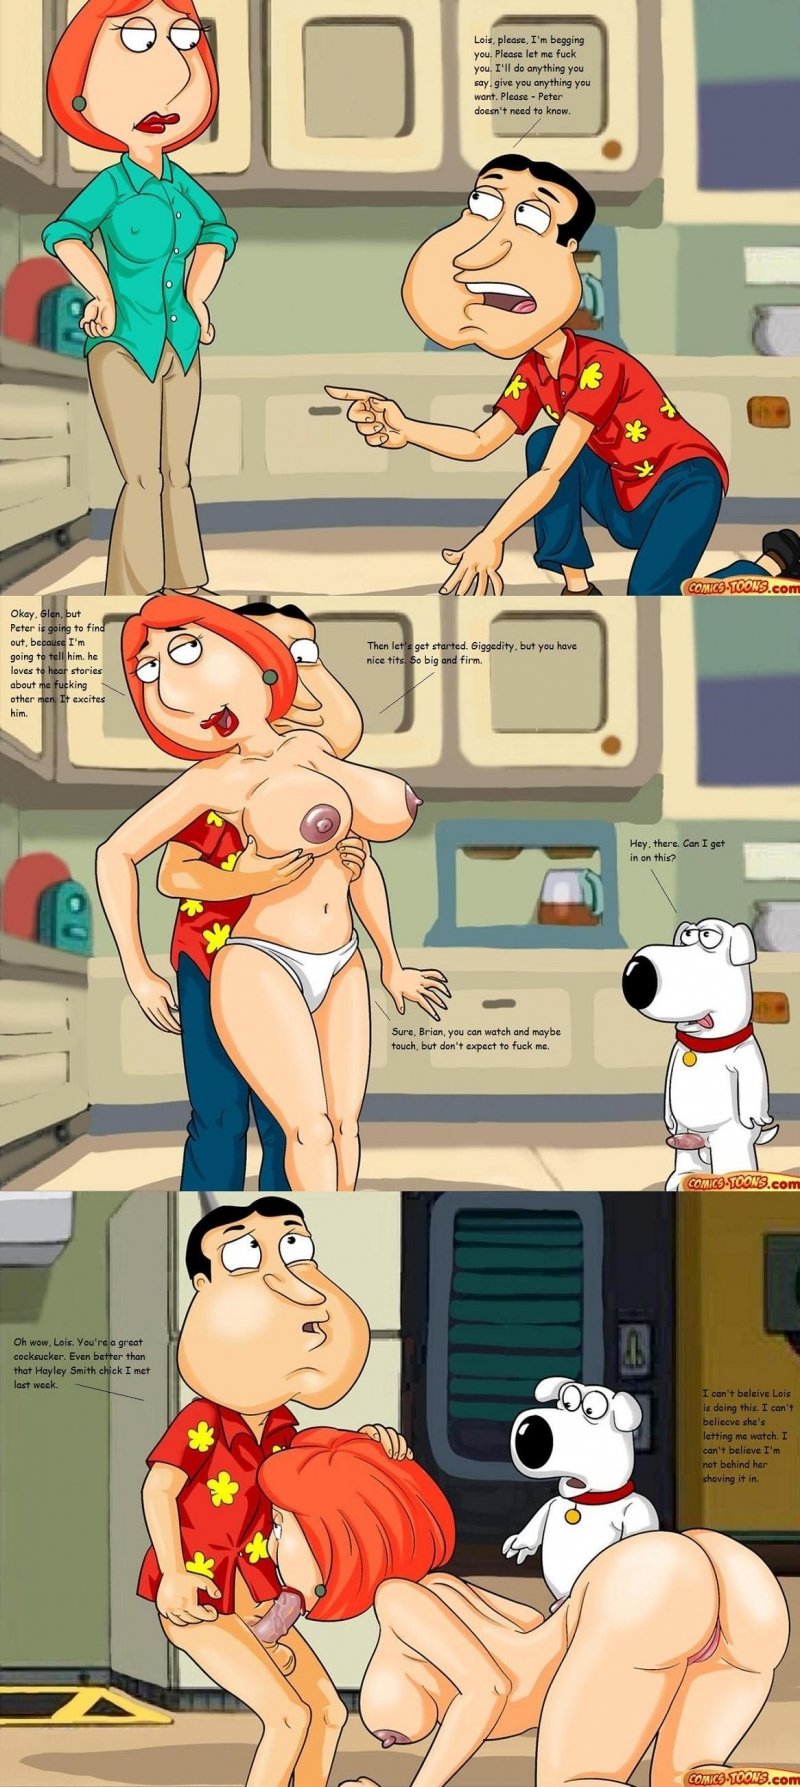 Lois Griffin doesn't mind Brian to observe her having some adult joy with Quagmire...